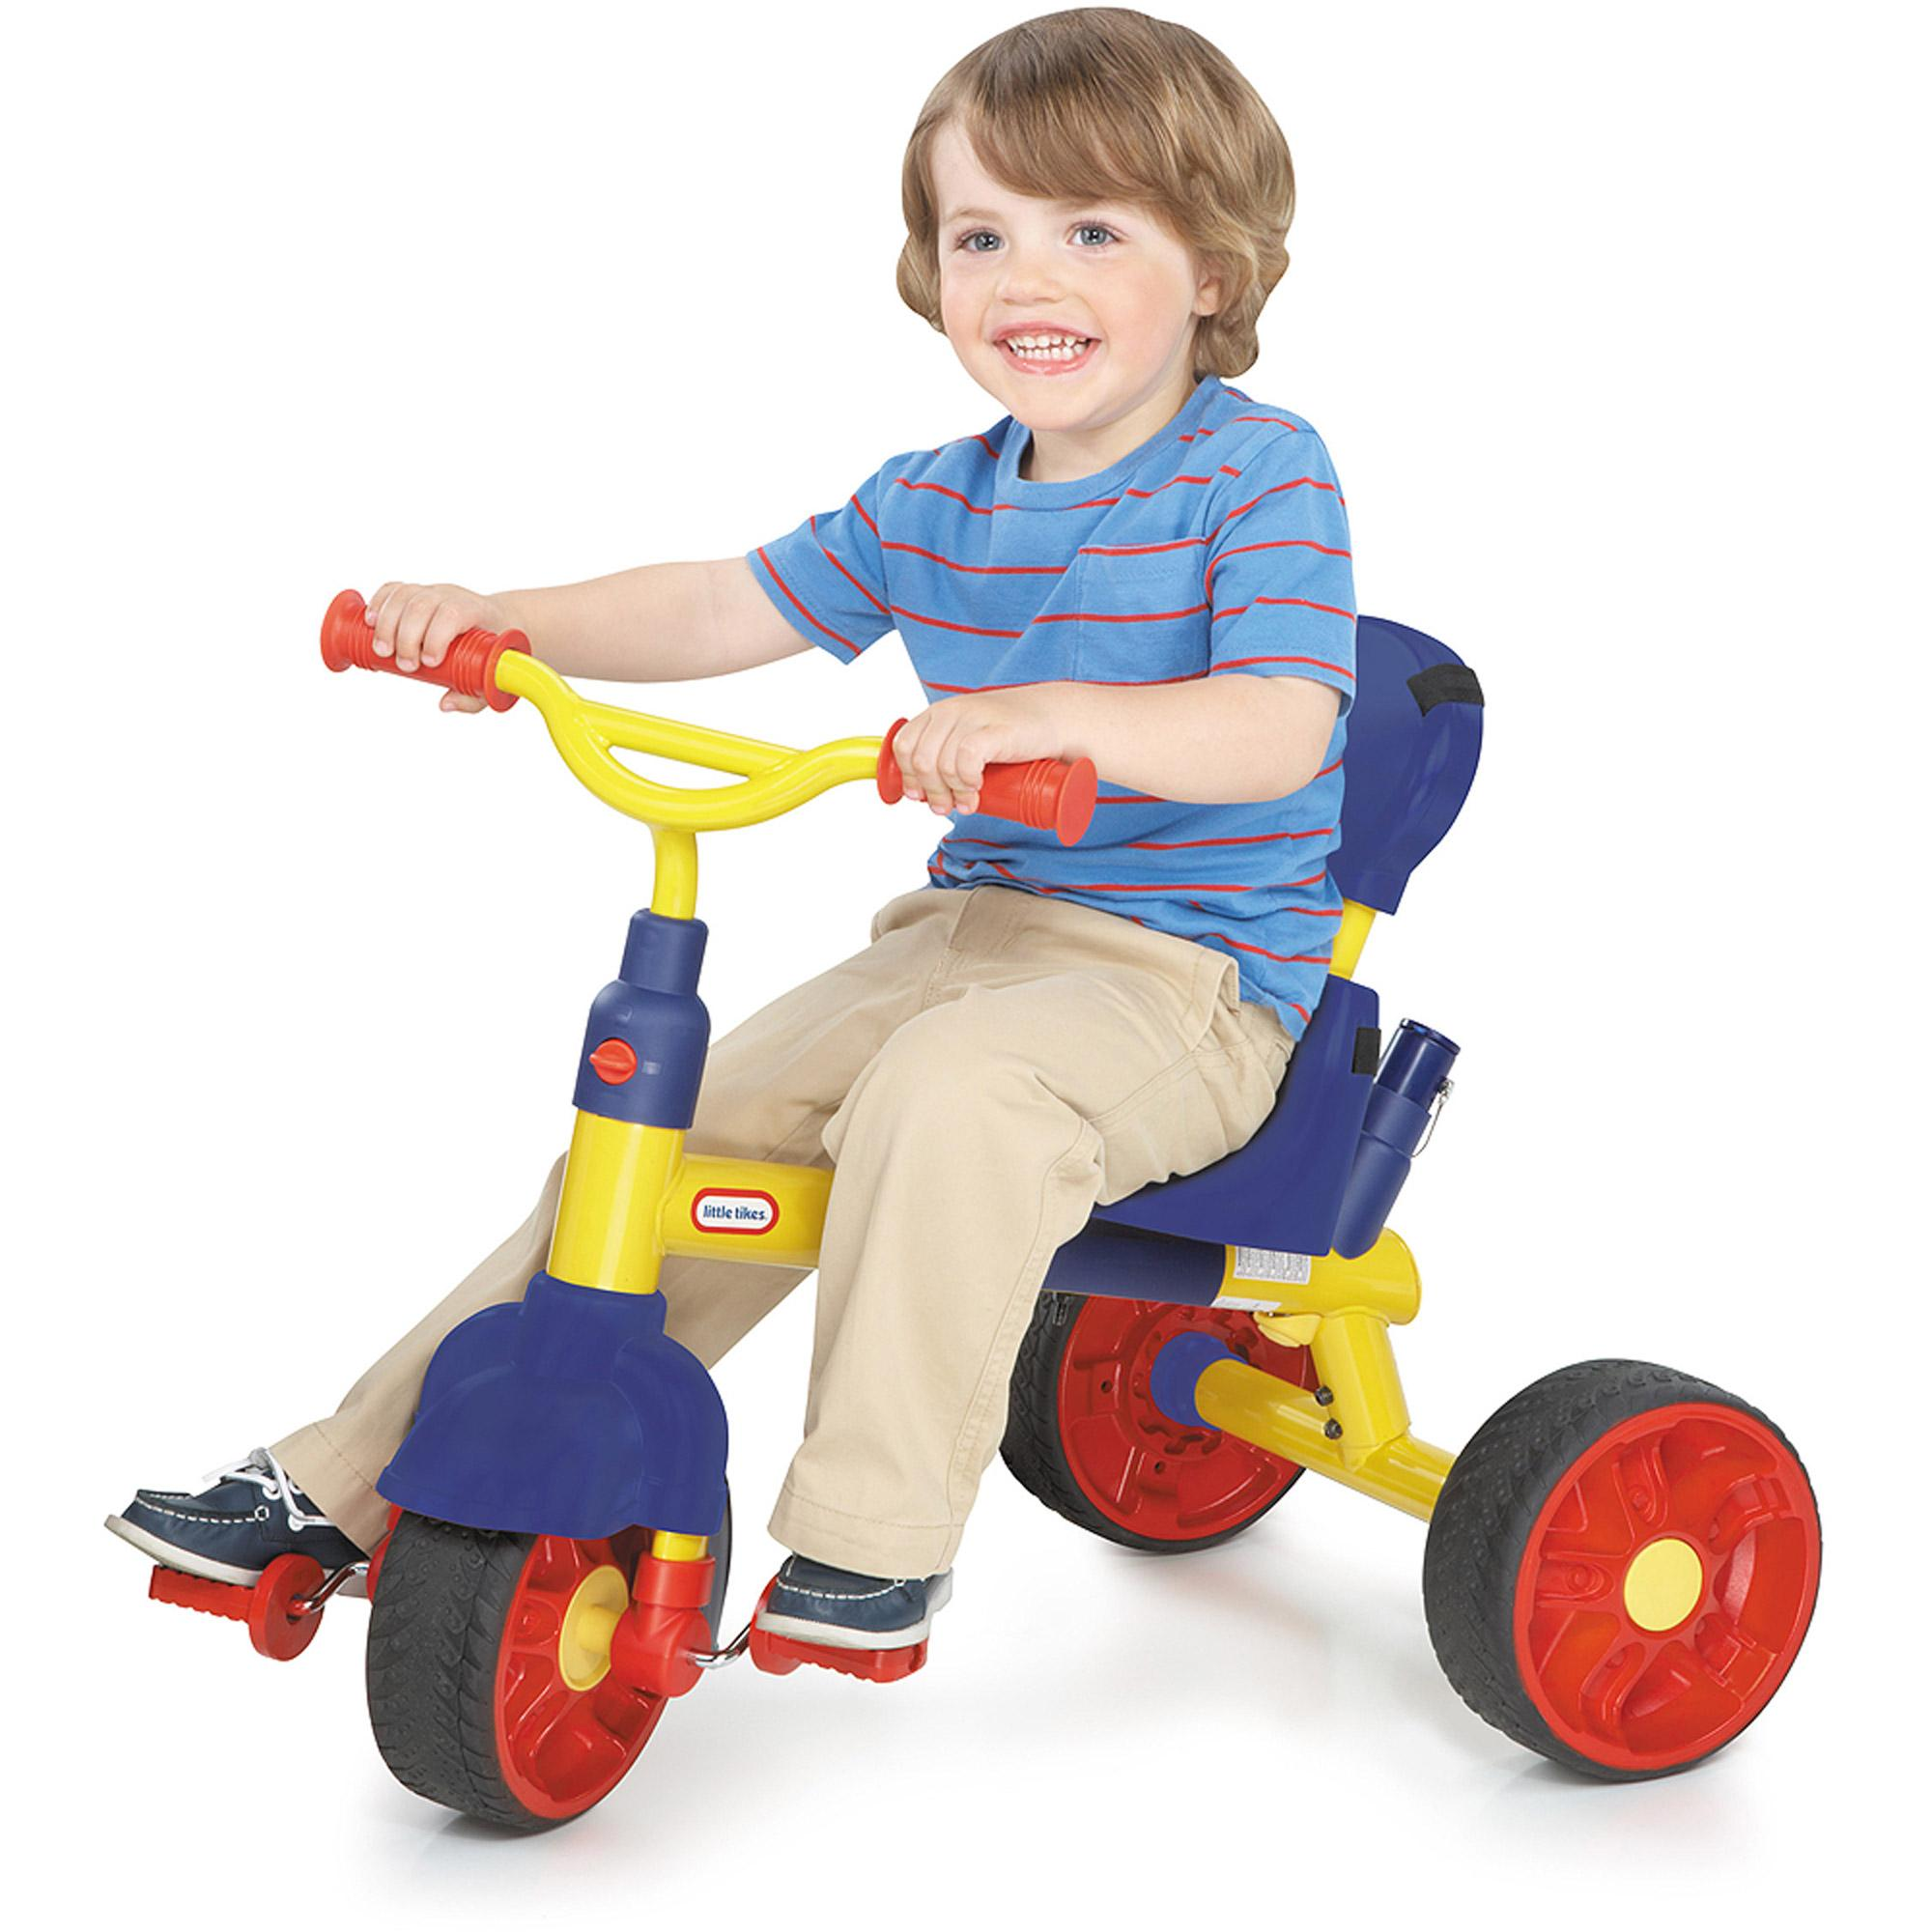 Little Tikes 3 in 1 Trike  eBay -> Kuchnia Zabawka Little Tikes